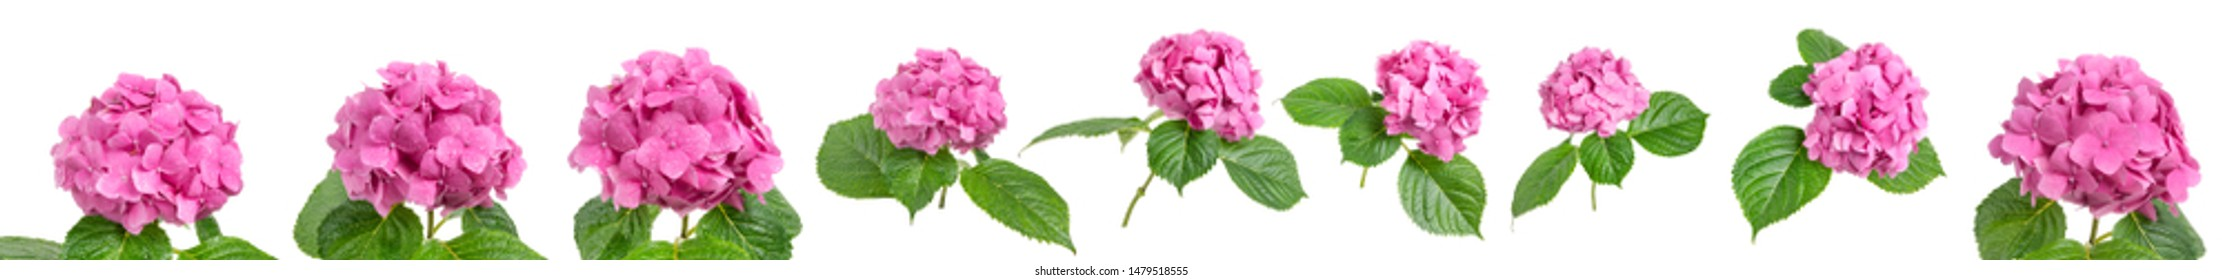 Pink Hydrangea flowers isolated on white background, Blooming branch of Hortensia pink flower head, Bouquet of pink hydrangea flower garden bush with leaves